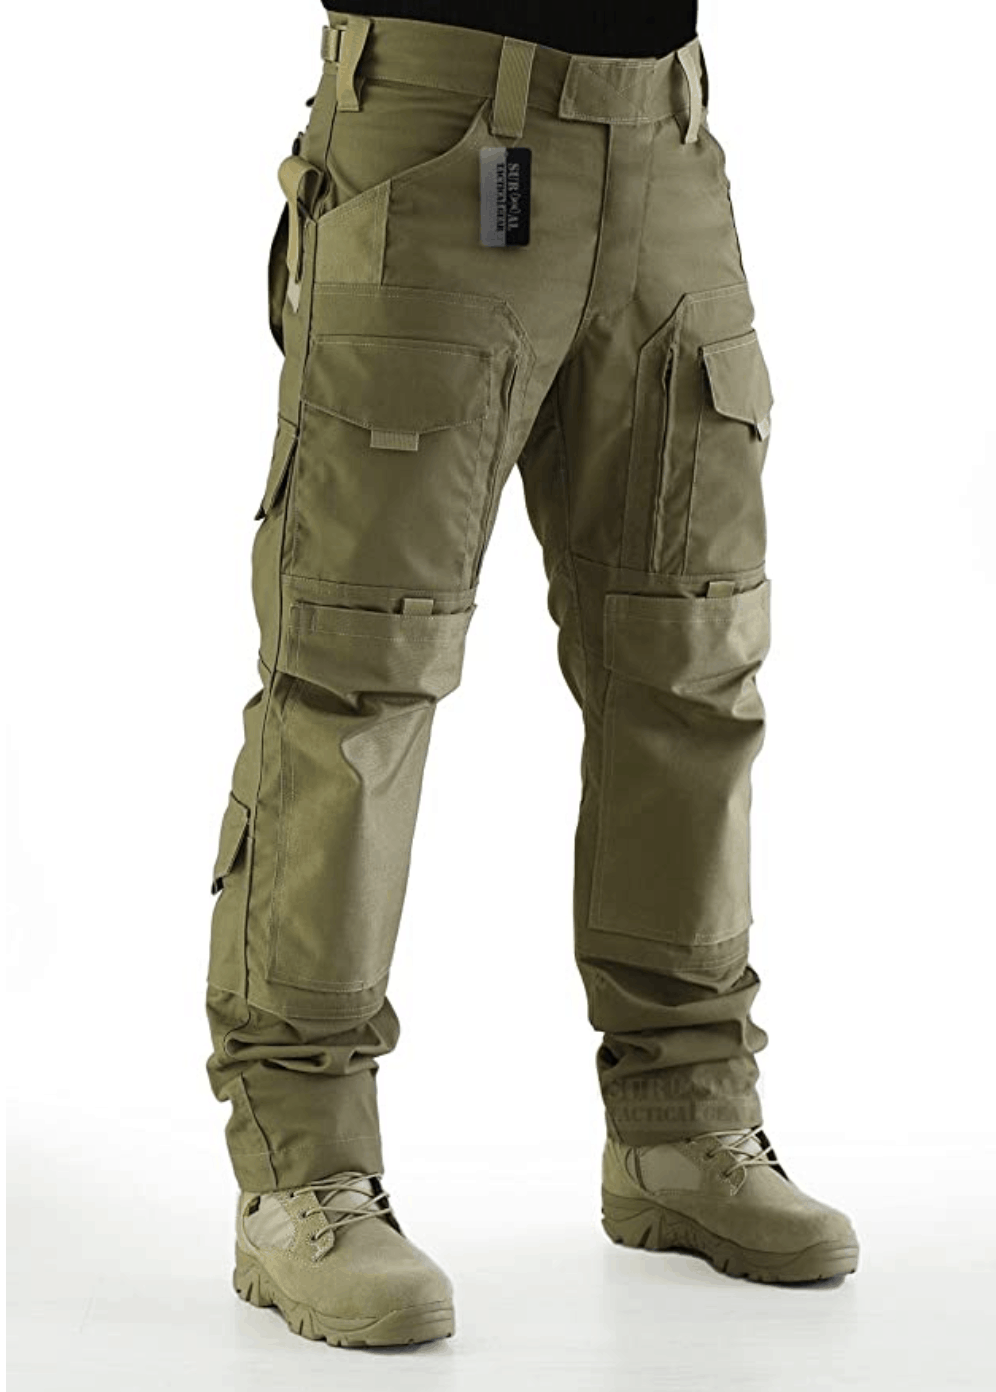 Zapt Tactical Molle Ripstop Trousers